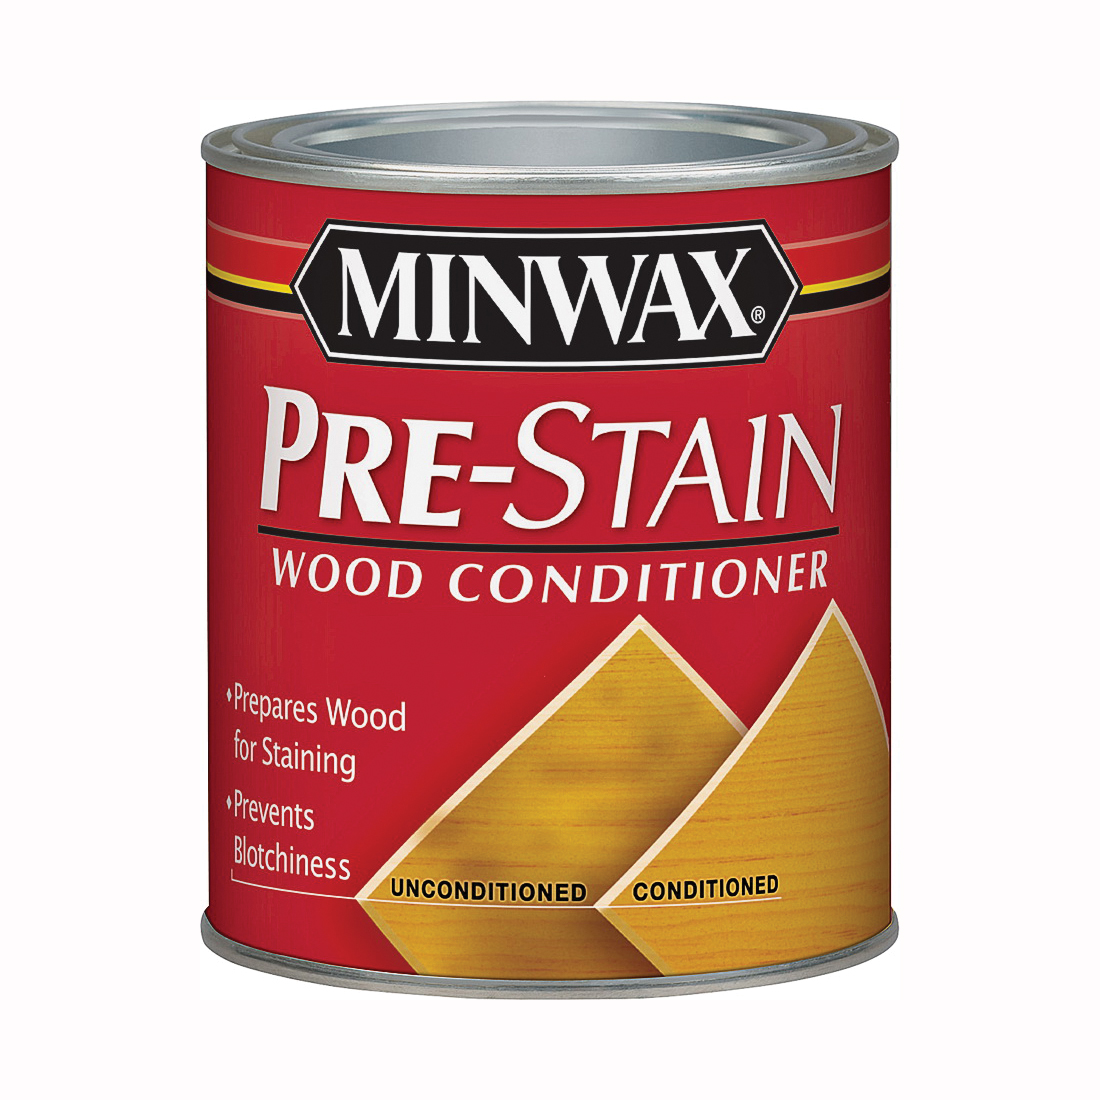 Picture of Minwax 61500444 Pre-Stain Wood Conditioner, Clear, Liquid, 1 qt, Can